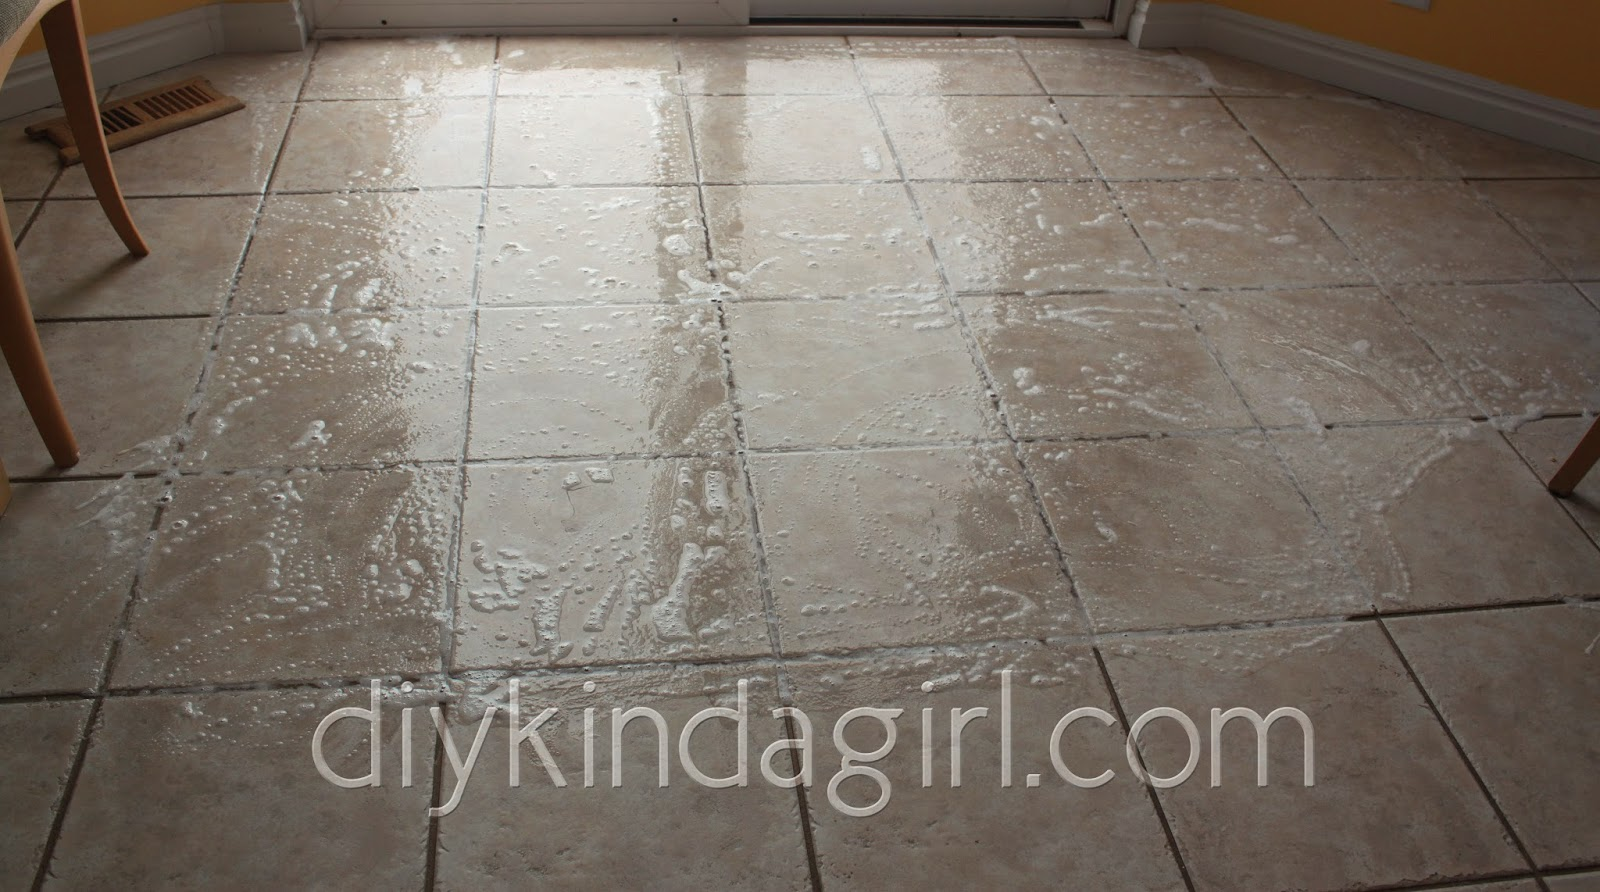 Diy kinda girl diy household tip cleaning grout oxiclean vs diy kinda girl diy household tip cleaning grout oxiclean vs woolite dailygadgetfo Image collections